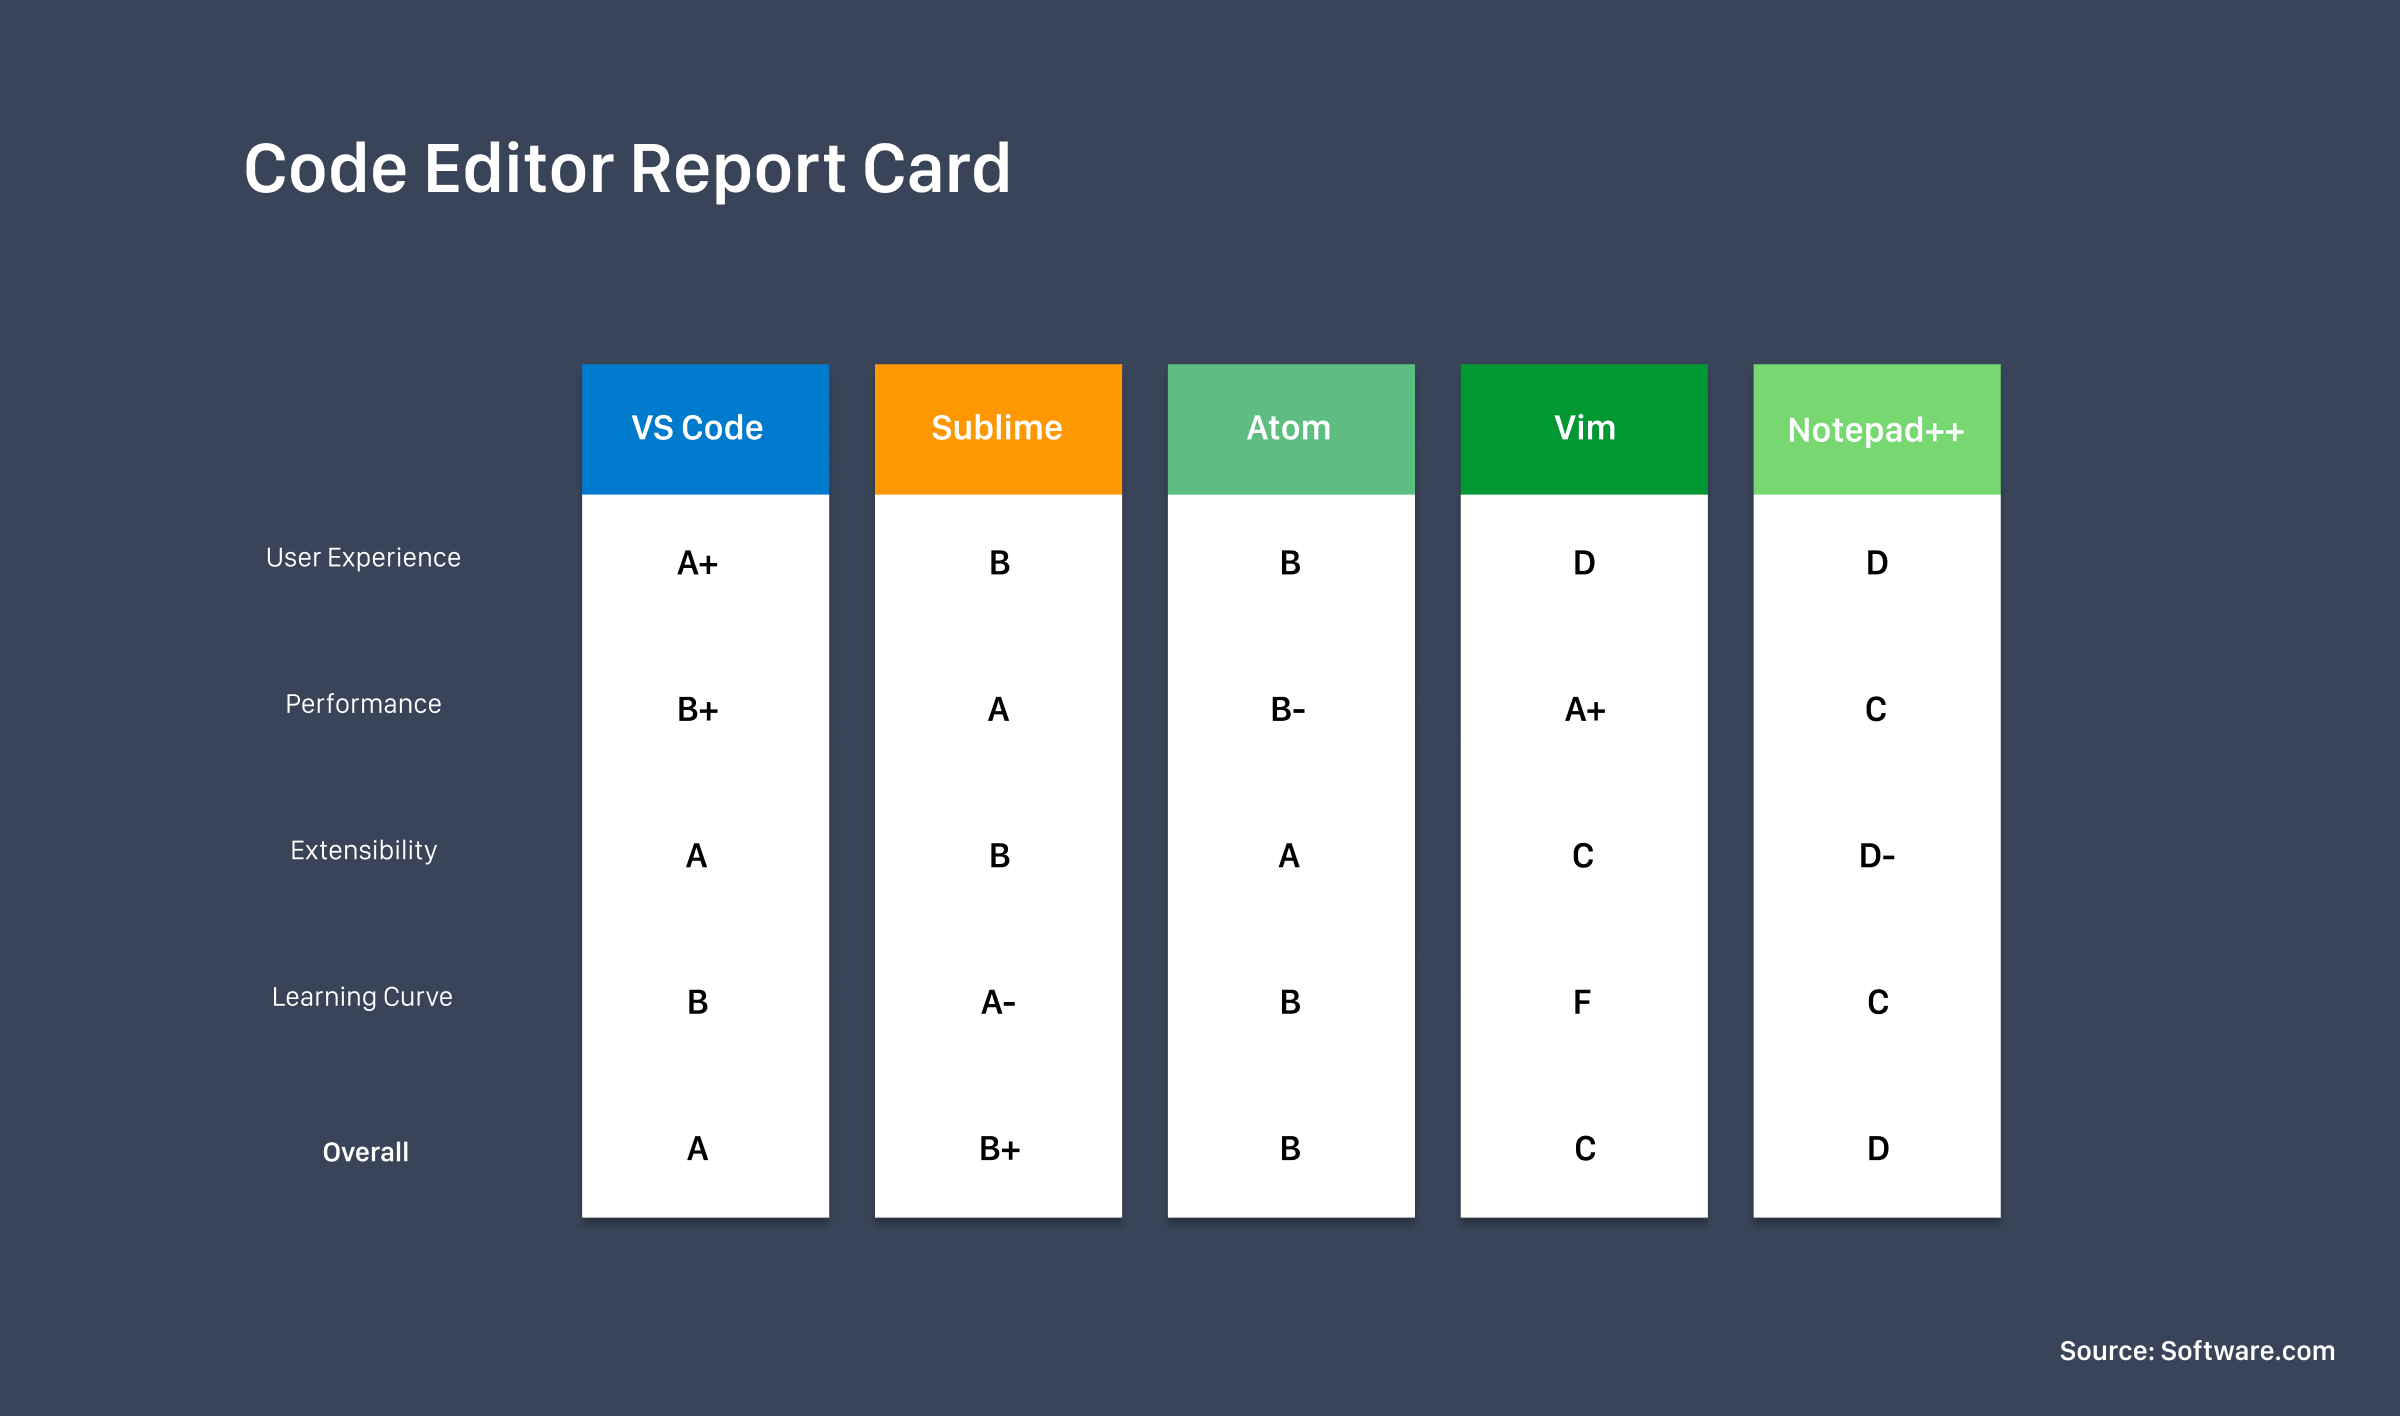 Code editor report that compares VS Code, Sublime, Atom, Vim, and Notepad++